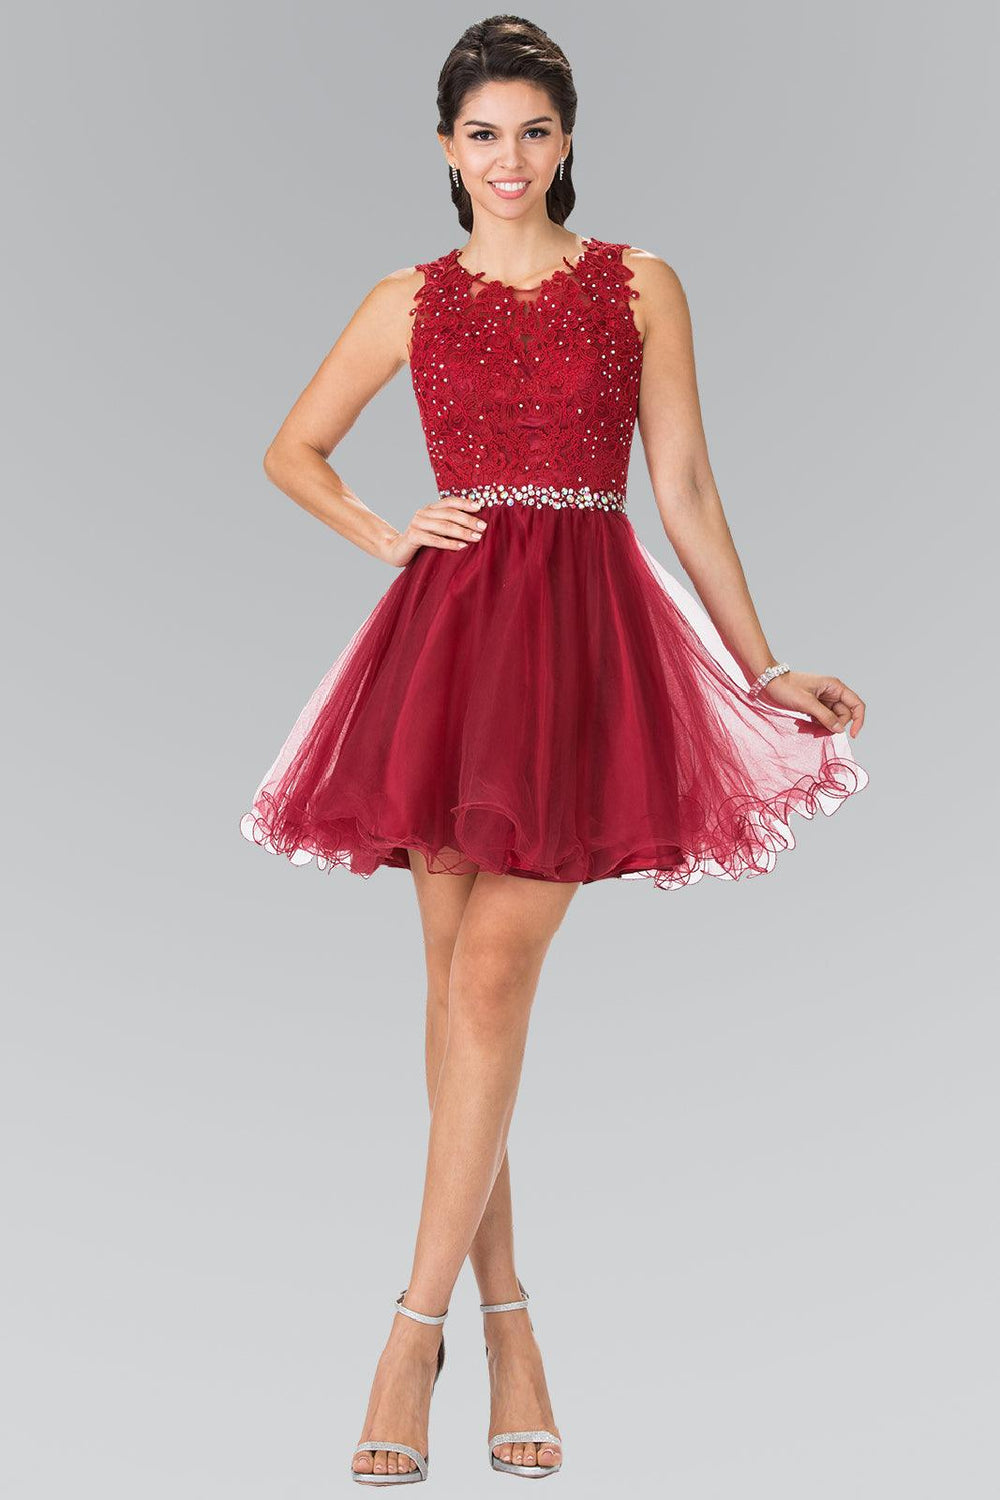 Sleeveless Prom Short Dress Homecoming - The Dress Outlet Burgundy